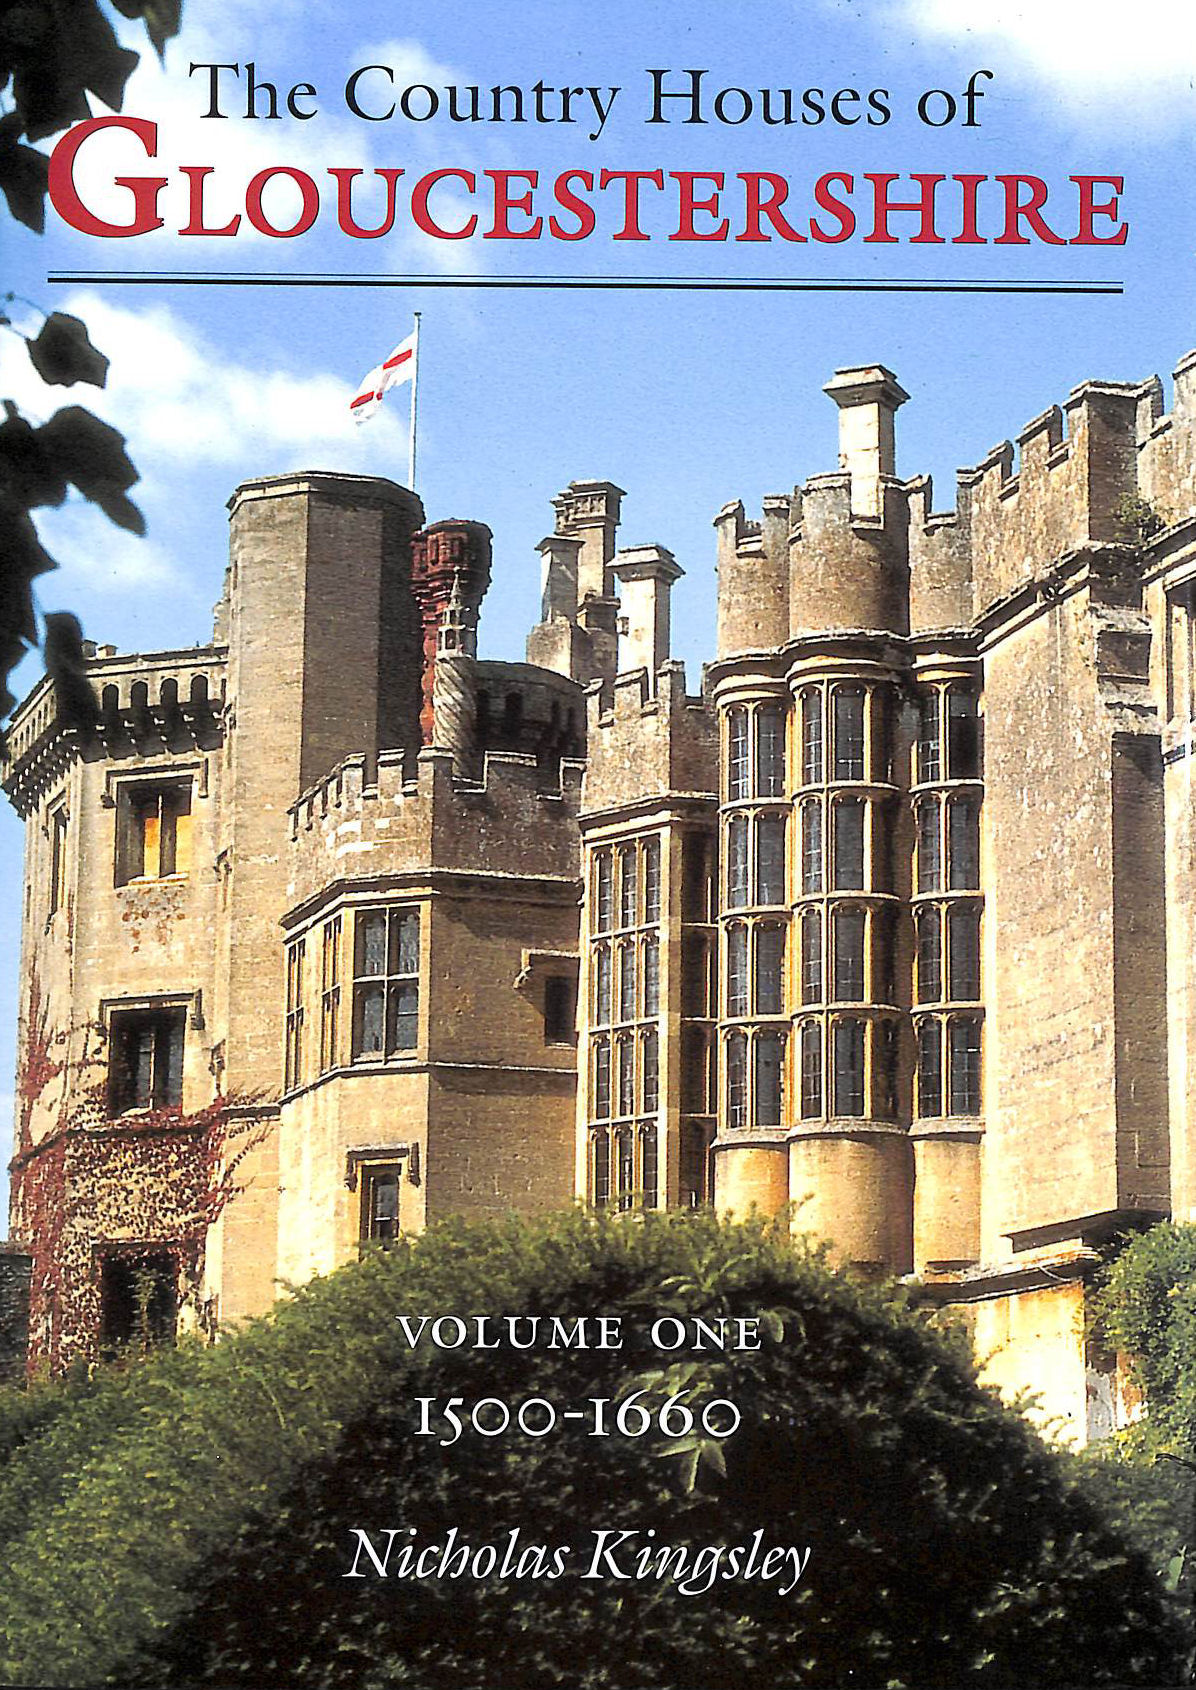 Image for The Country Houses of Gloucestershire: 1500-1660 Vol 1